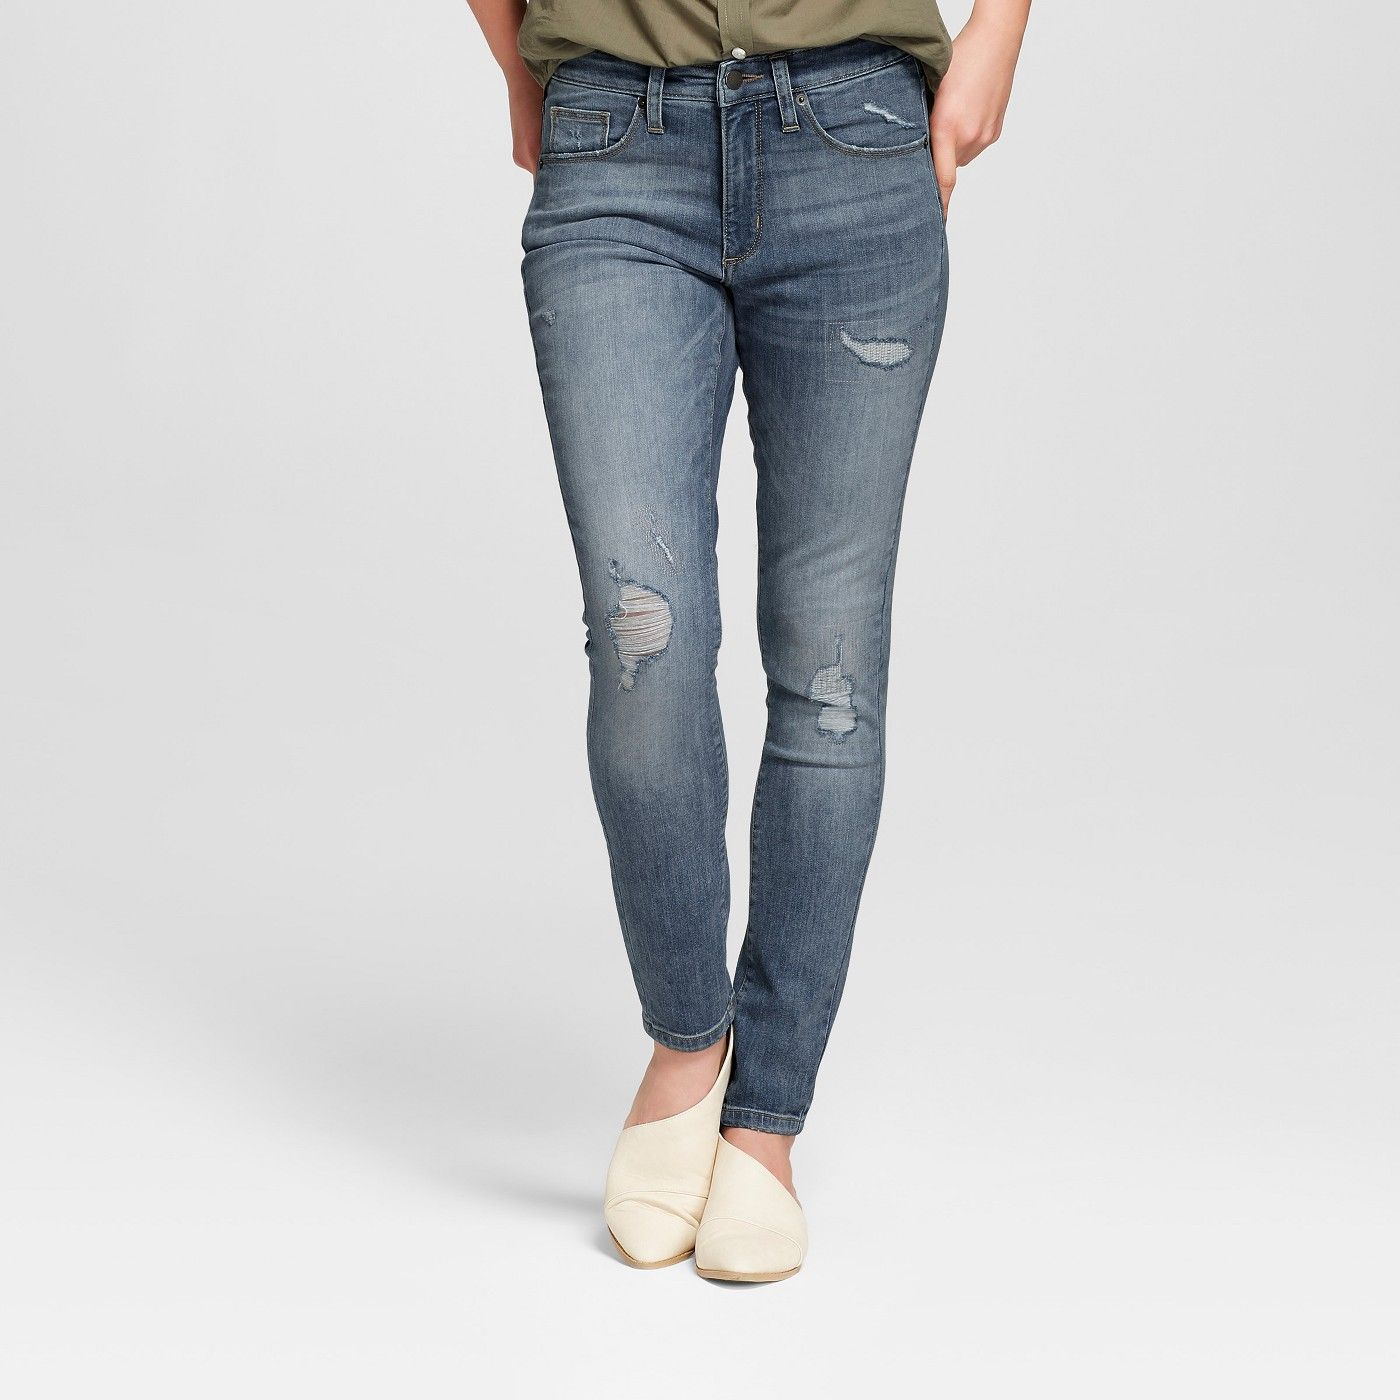 96b84b7b38 Women's High-Rise Destructed Skinny Jeans - Universal Thread™ Medium Wash  from Target. These jeans are ones Riley Blue would definitely wear in  Sense8.